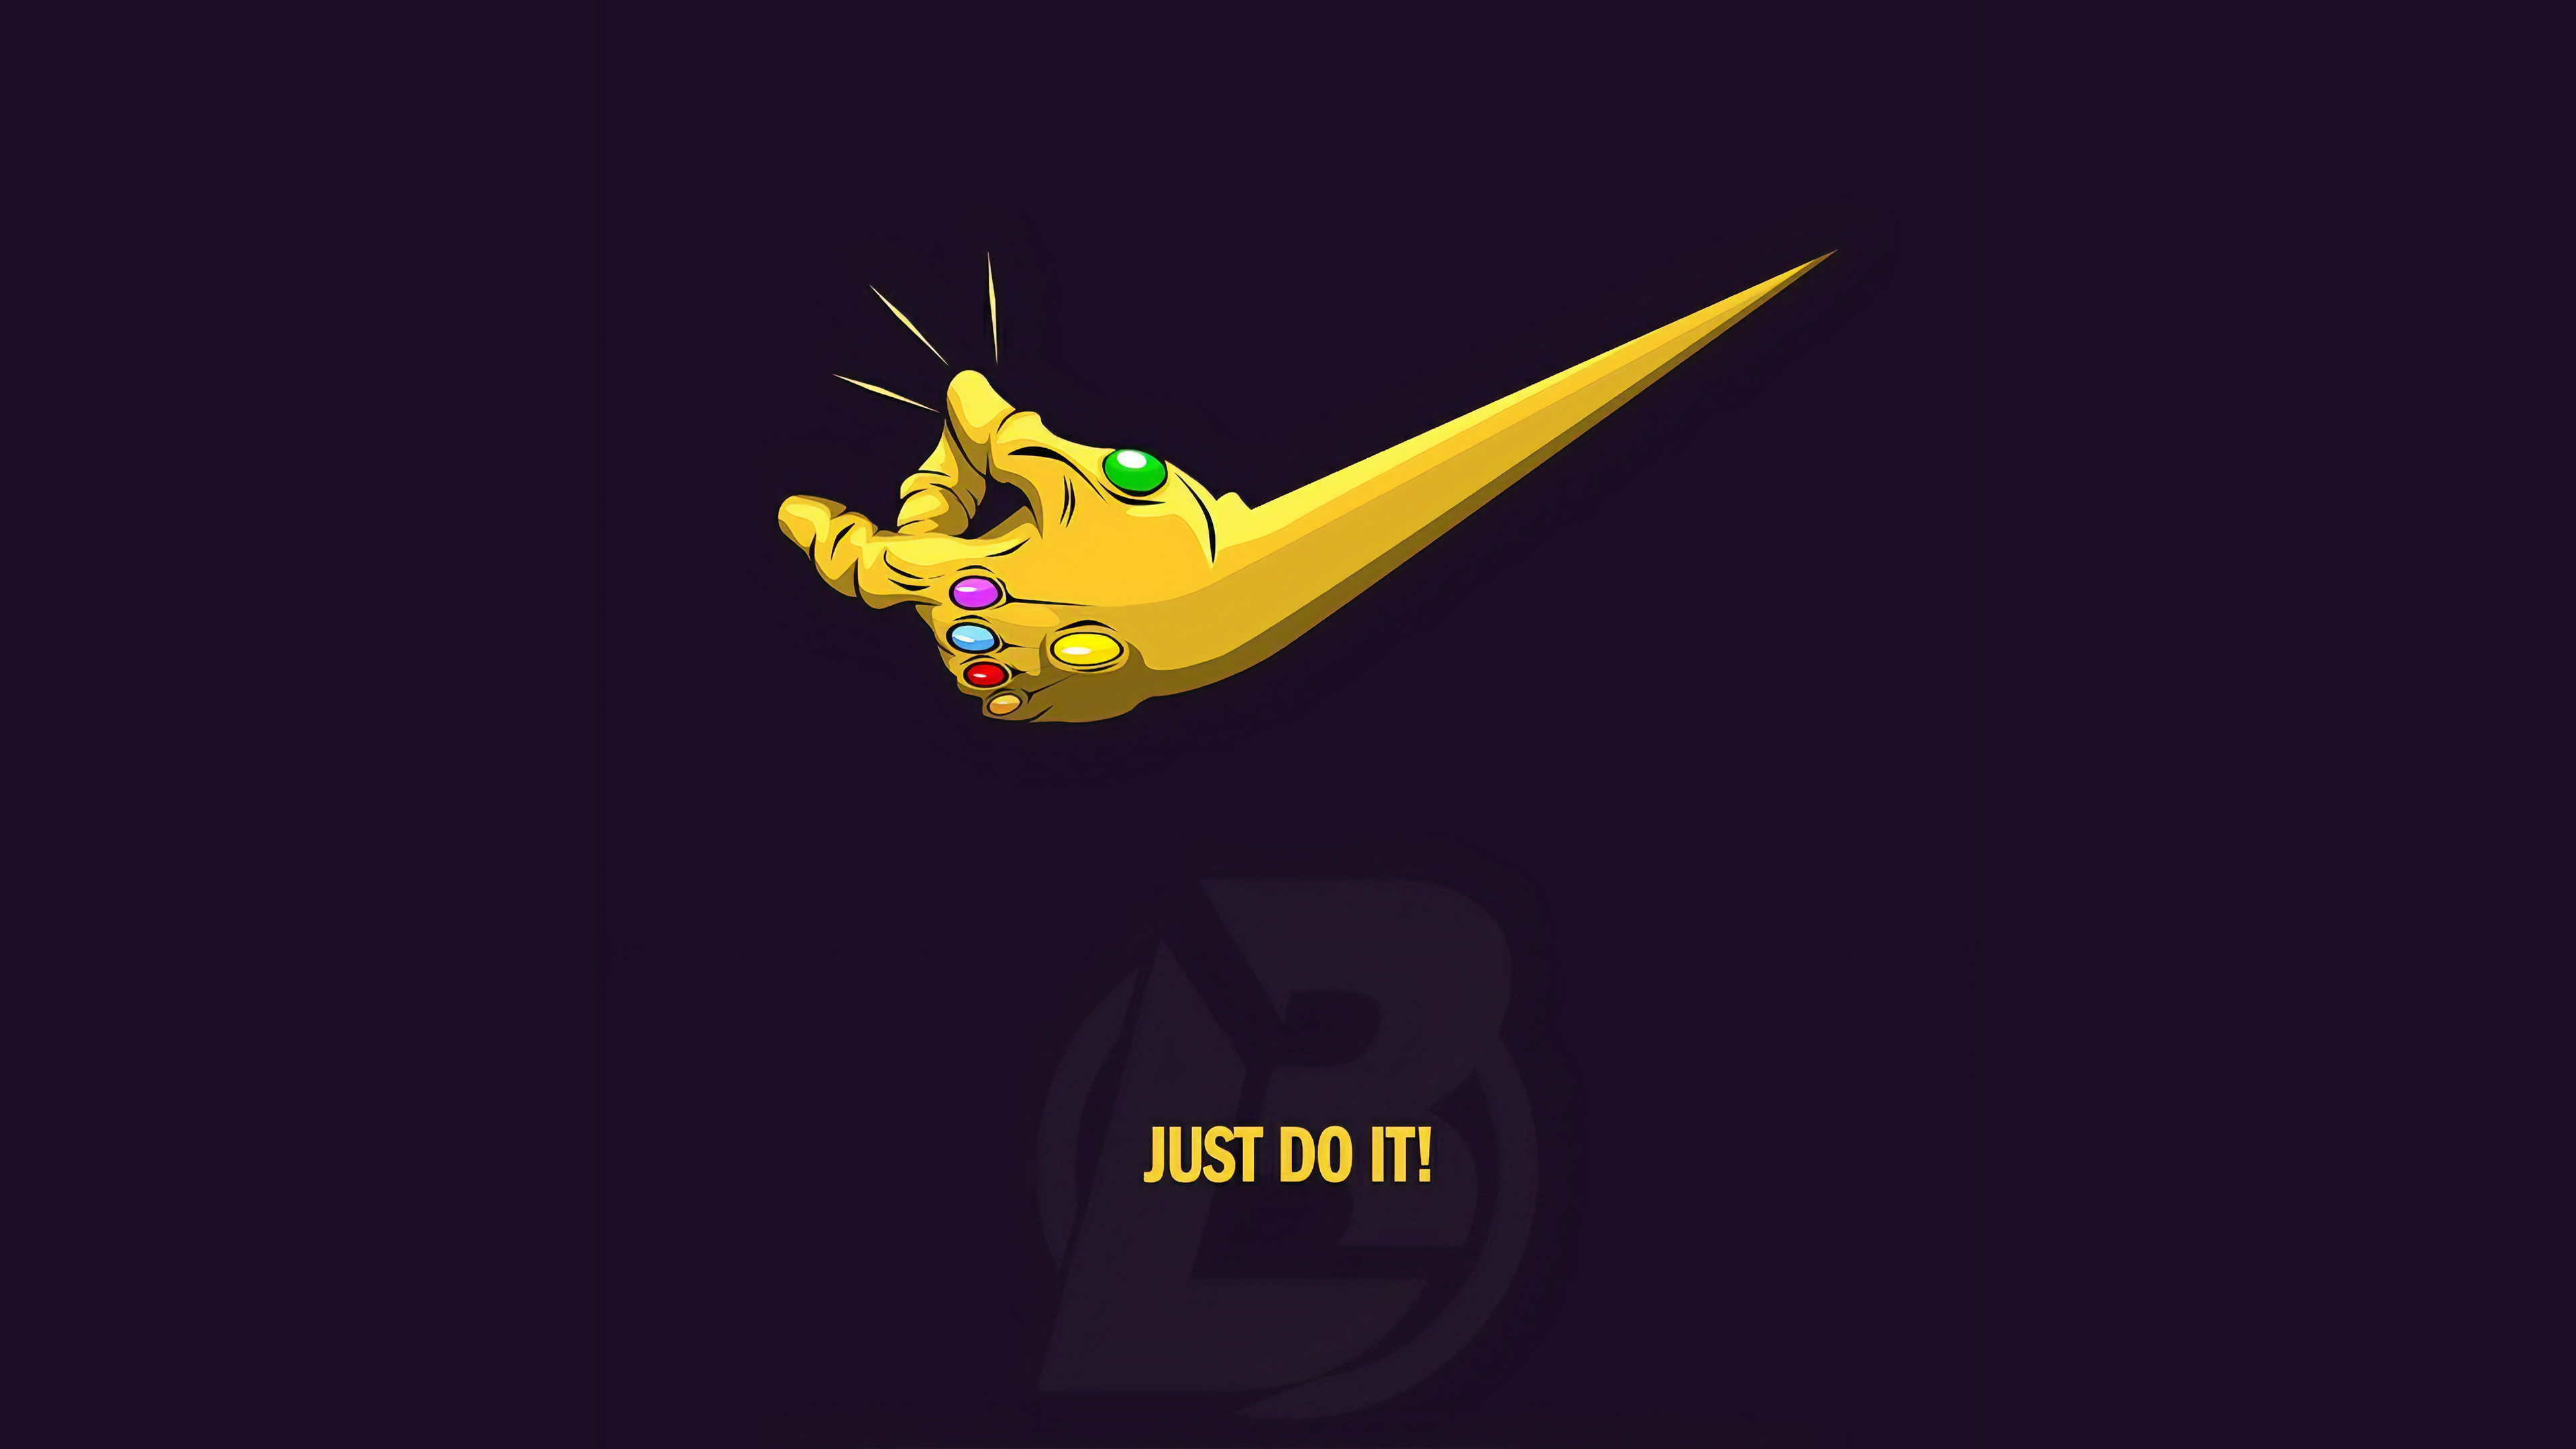 Just Do It Thanos 4k Hd Superheroes 4k Wallpapers Images